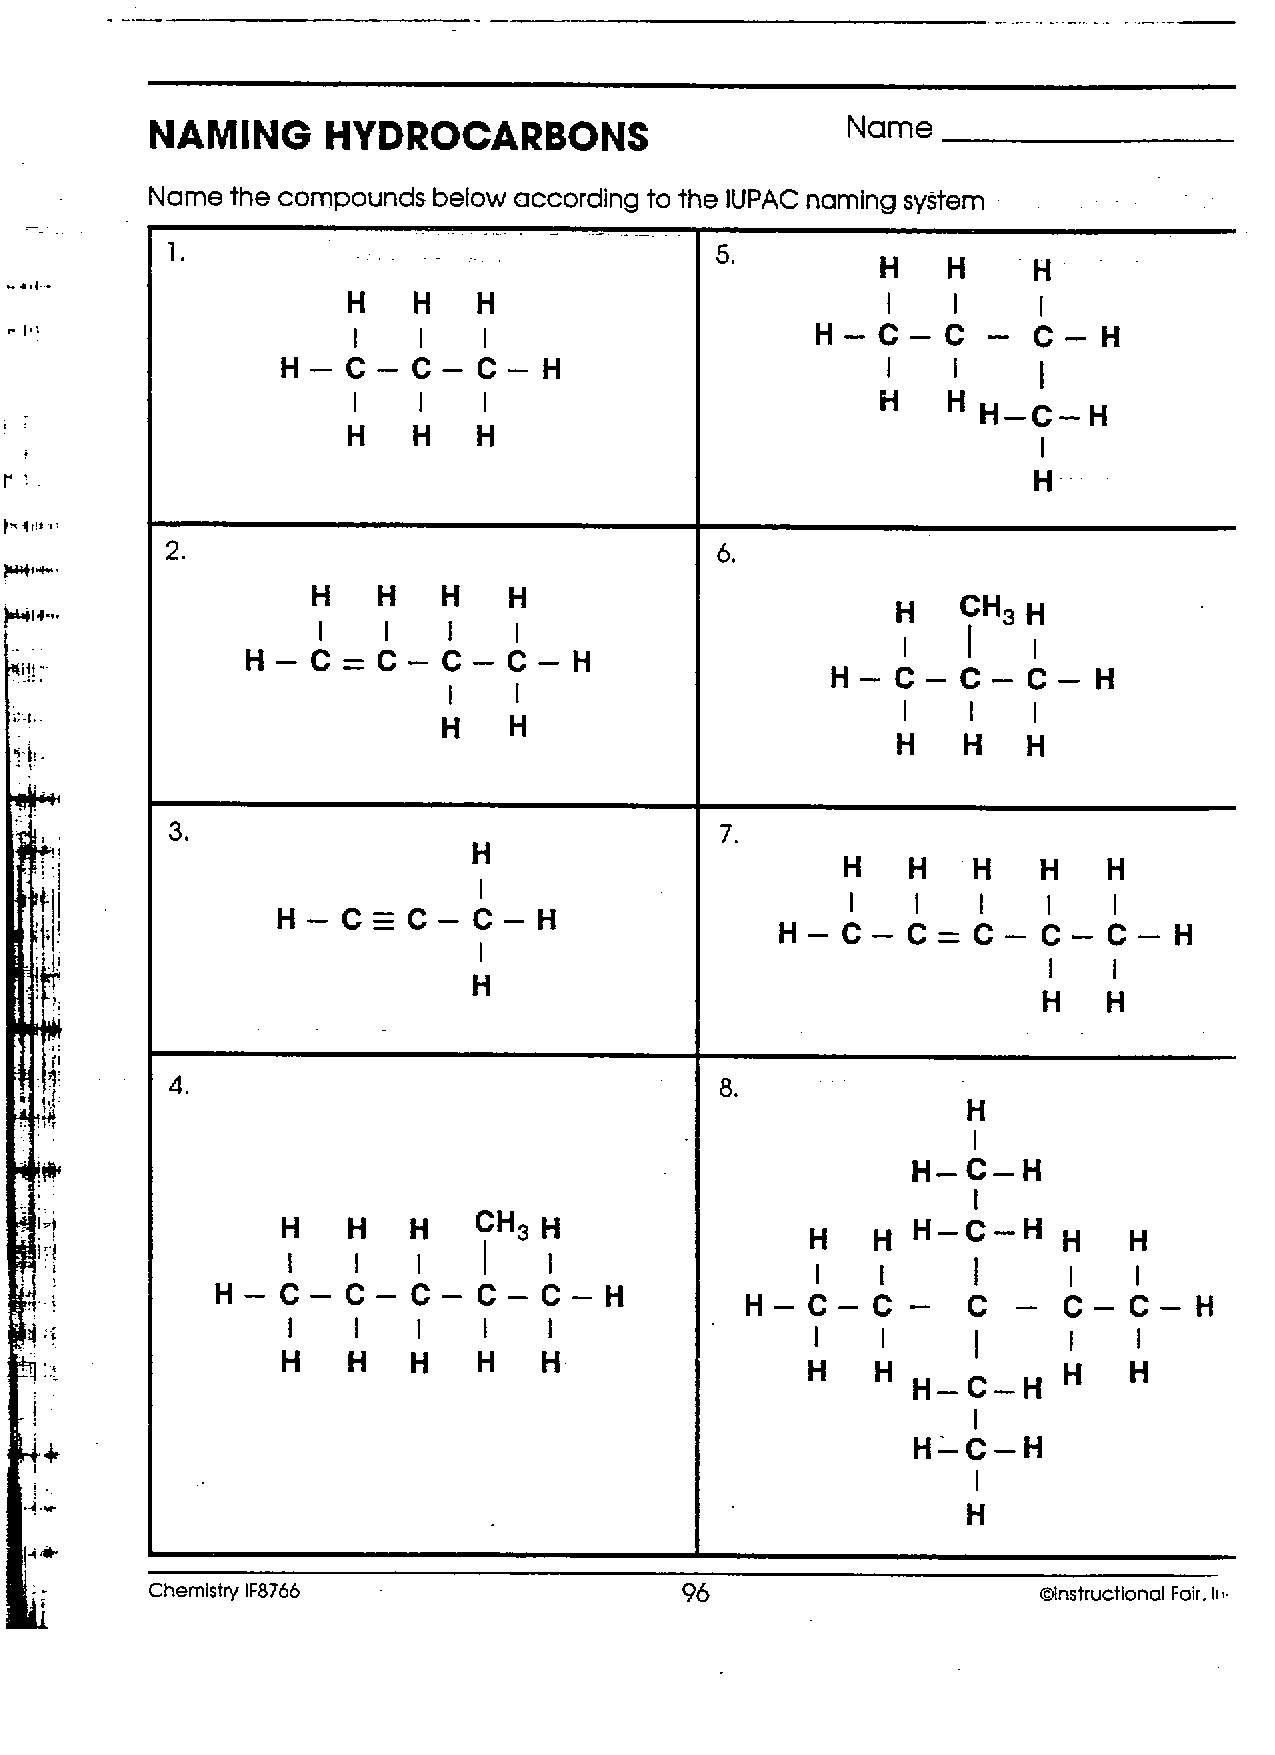 worksheet Nomenclature Chemistry Worksheet organic chemistry nomenclature worksheet week news softwares includes information about naming ethers may be